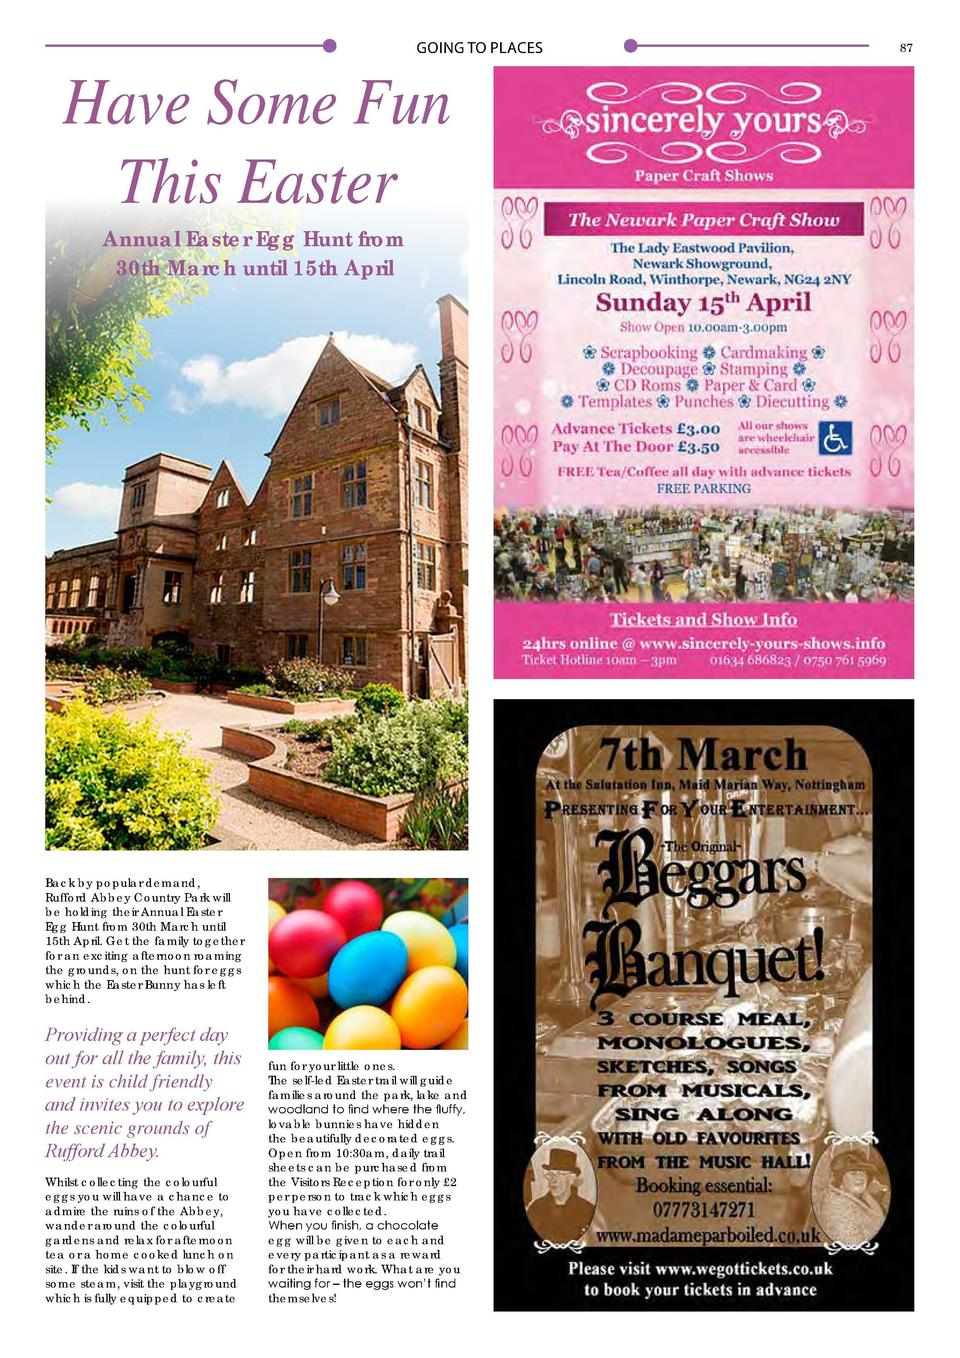 86  GOING TO PLACES  GOING TO PLACES  Have Some Fun This Easter Annual Easter Egg Hunt from 30th March until 15th April  B...